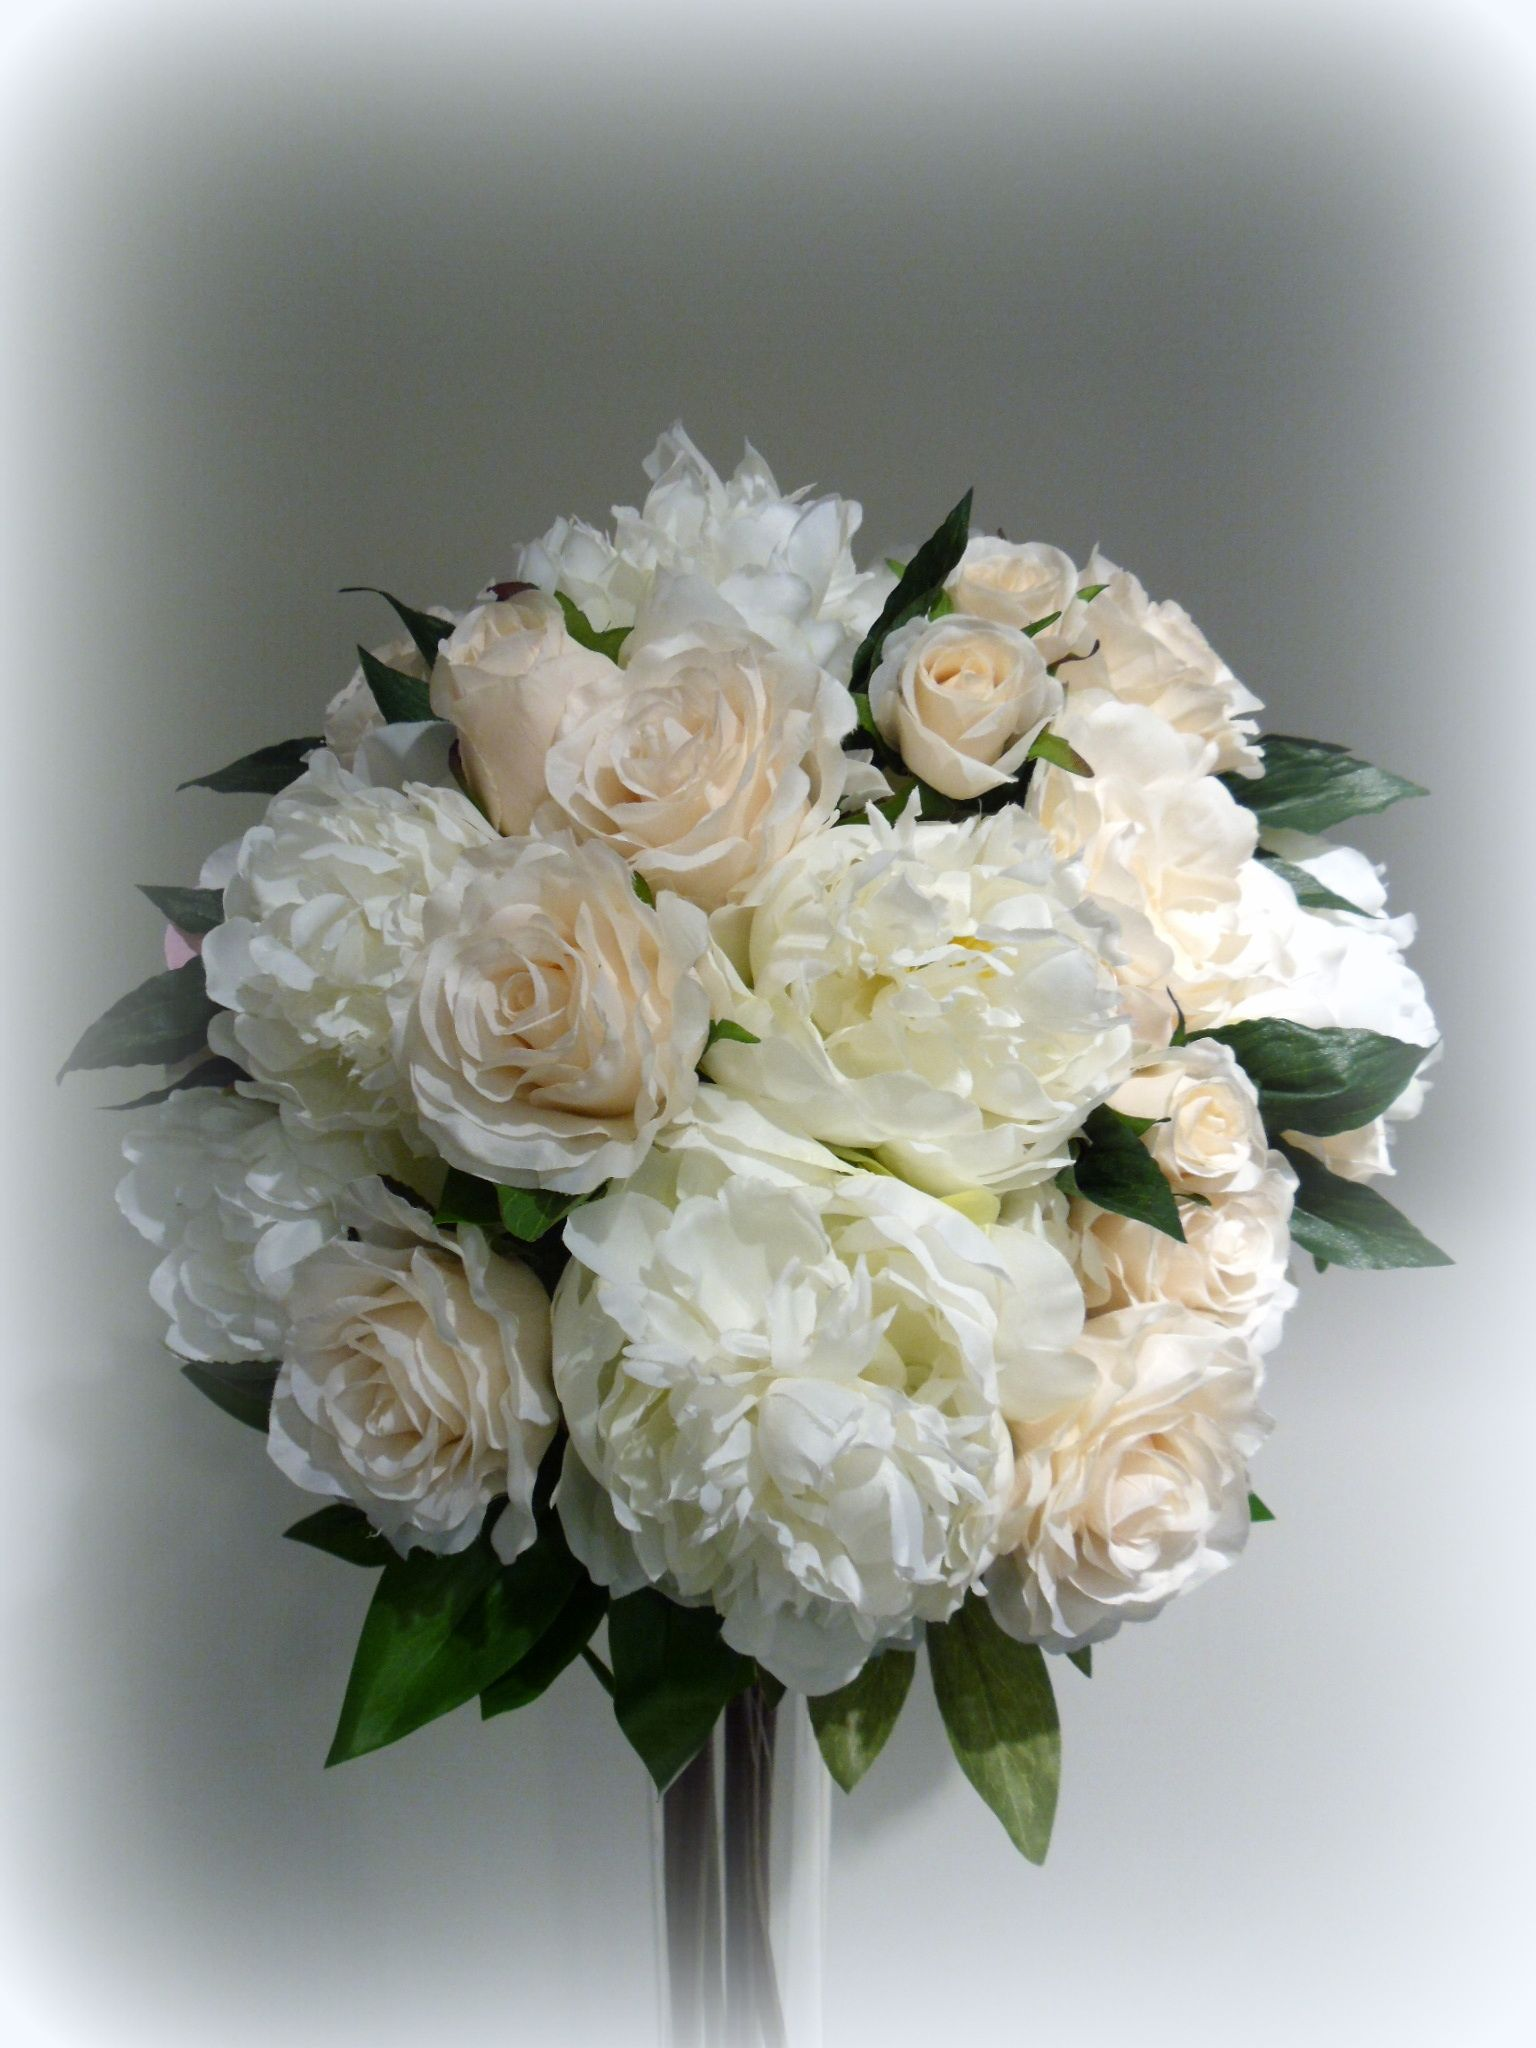 White Peonies And Champagne Roses All Artificial Flowers From Www Florabunda Co Nz Artificial Flowers Wedding Flowers Fake Flowers